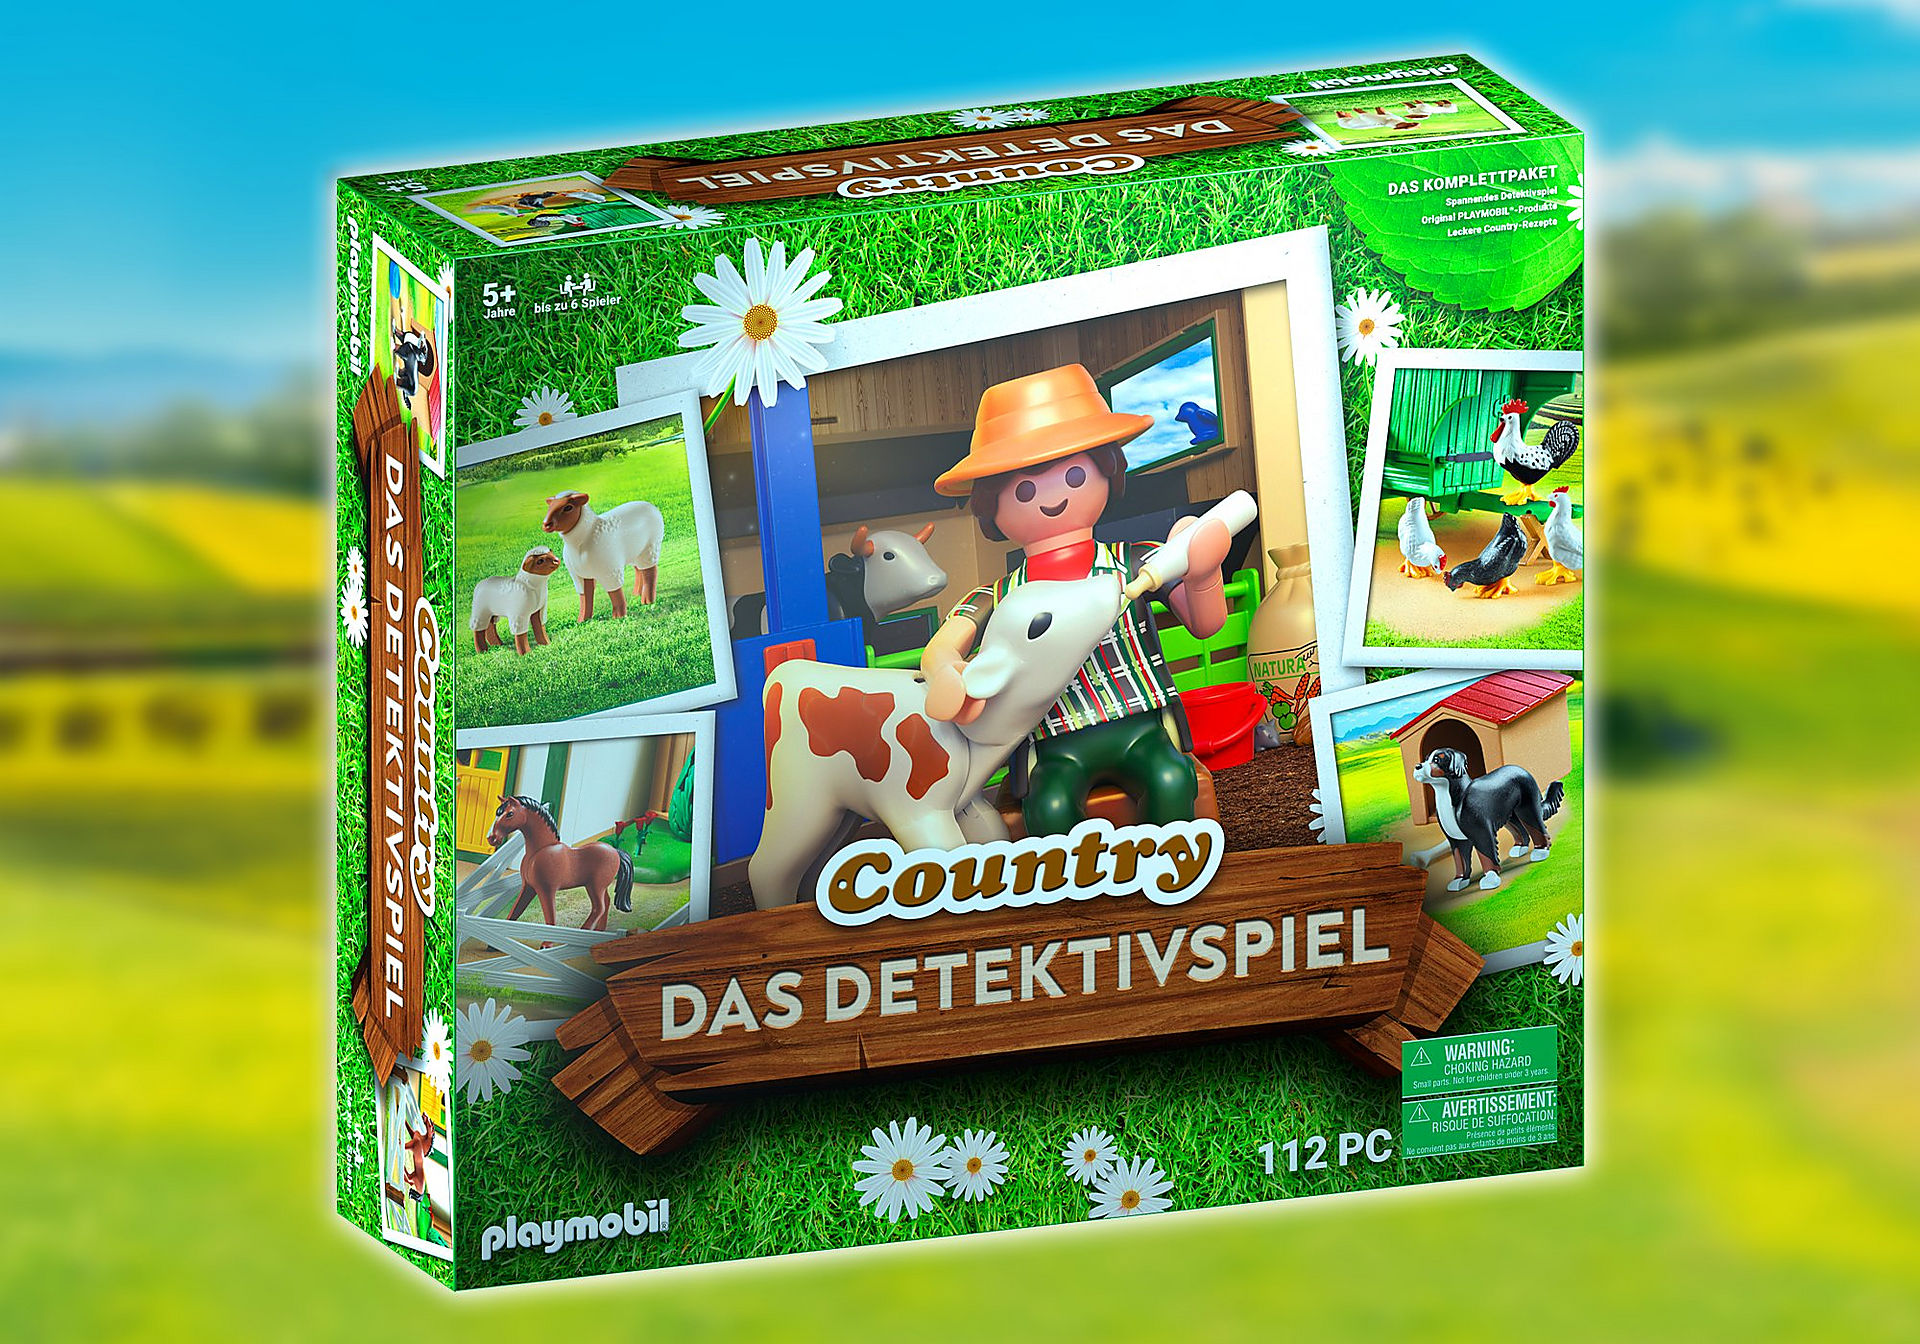 70763 PLAYMOBIL®Box: COUNTRY Das Detektivspiel Das Familienevent zoom image1